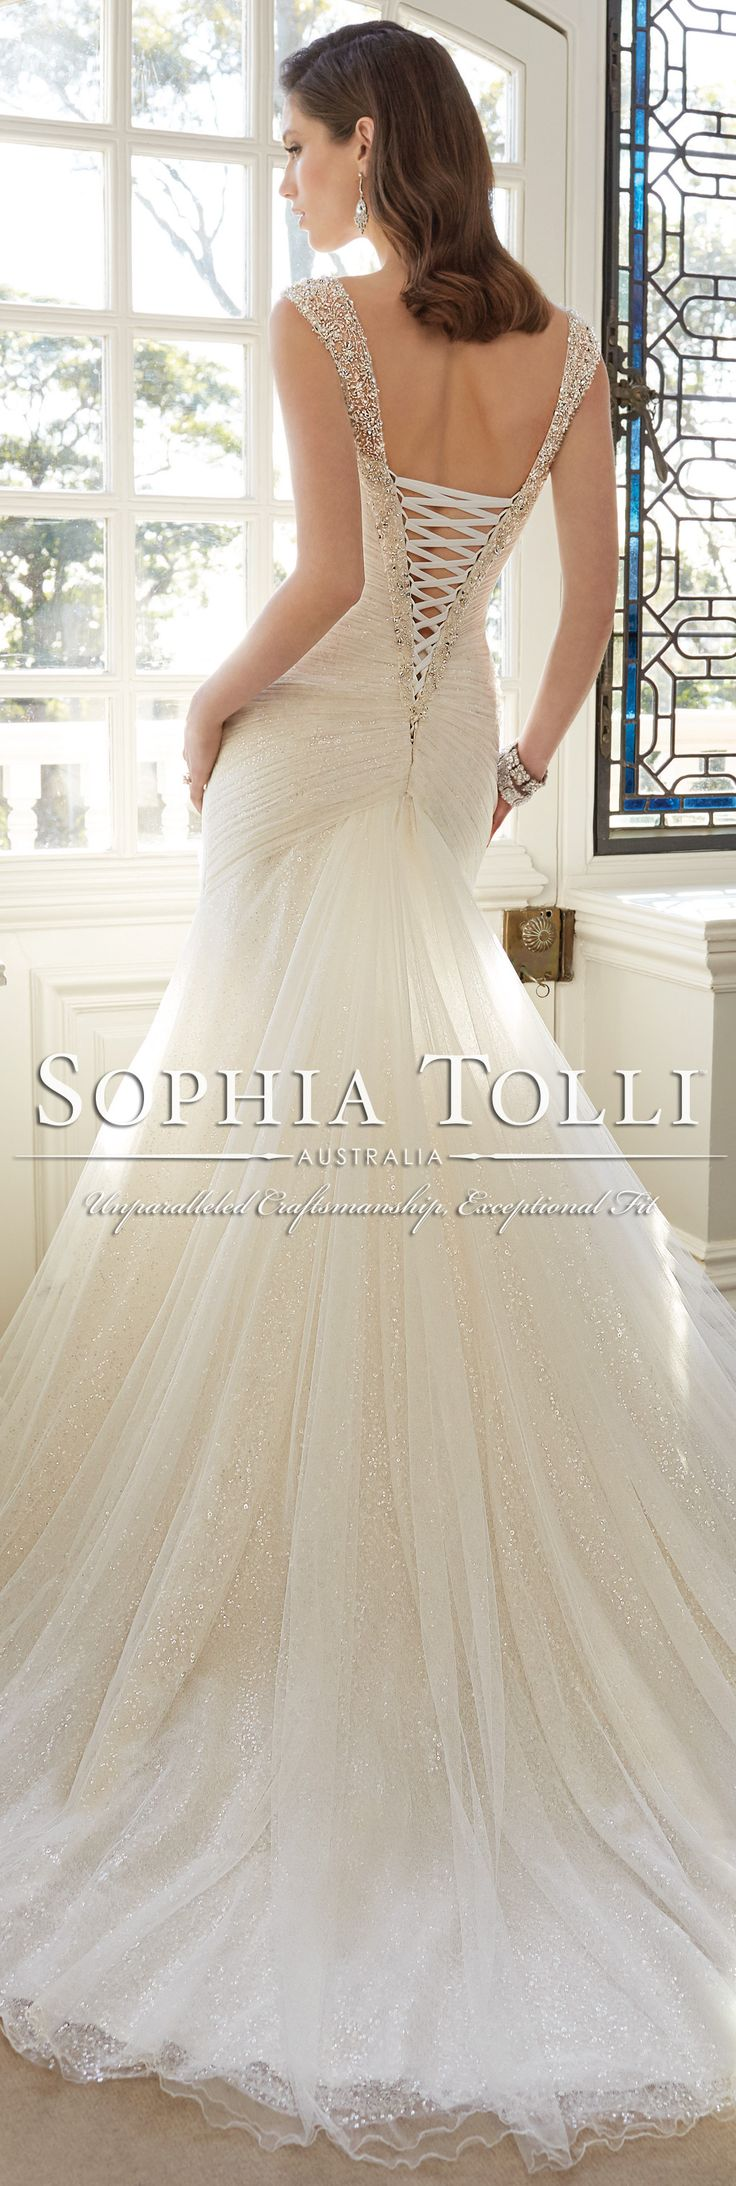 The Sophia Tolli Spring 2016 Wedding Dress Collection - Style No. Y11640 - Candace #tulleweddingdress